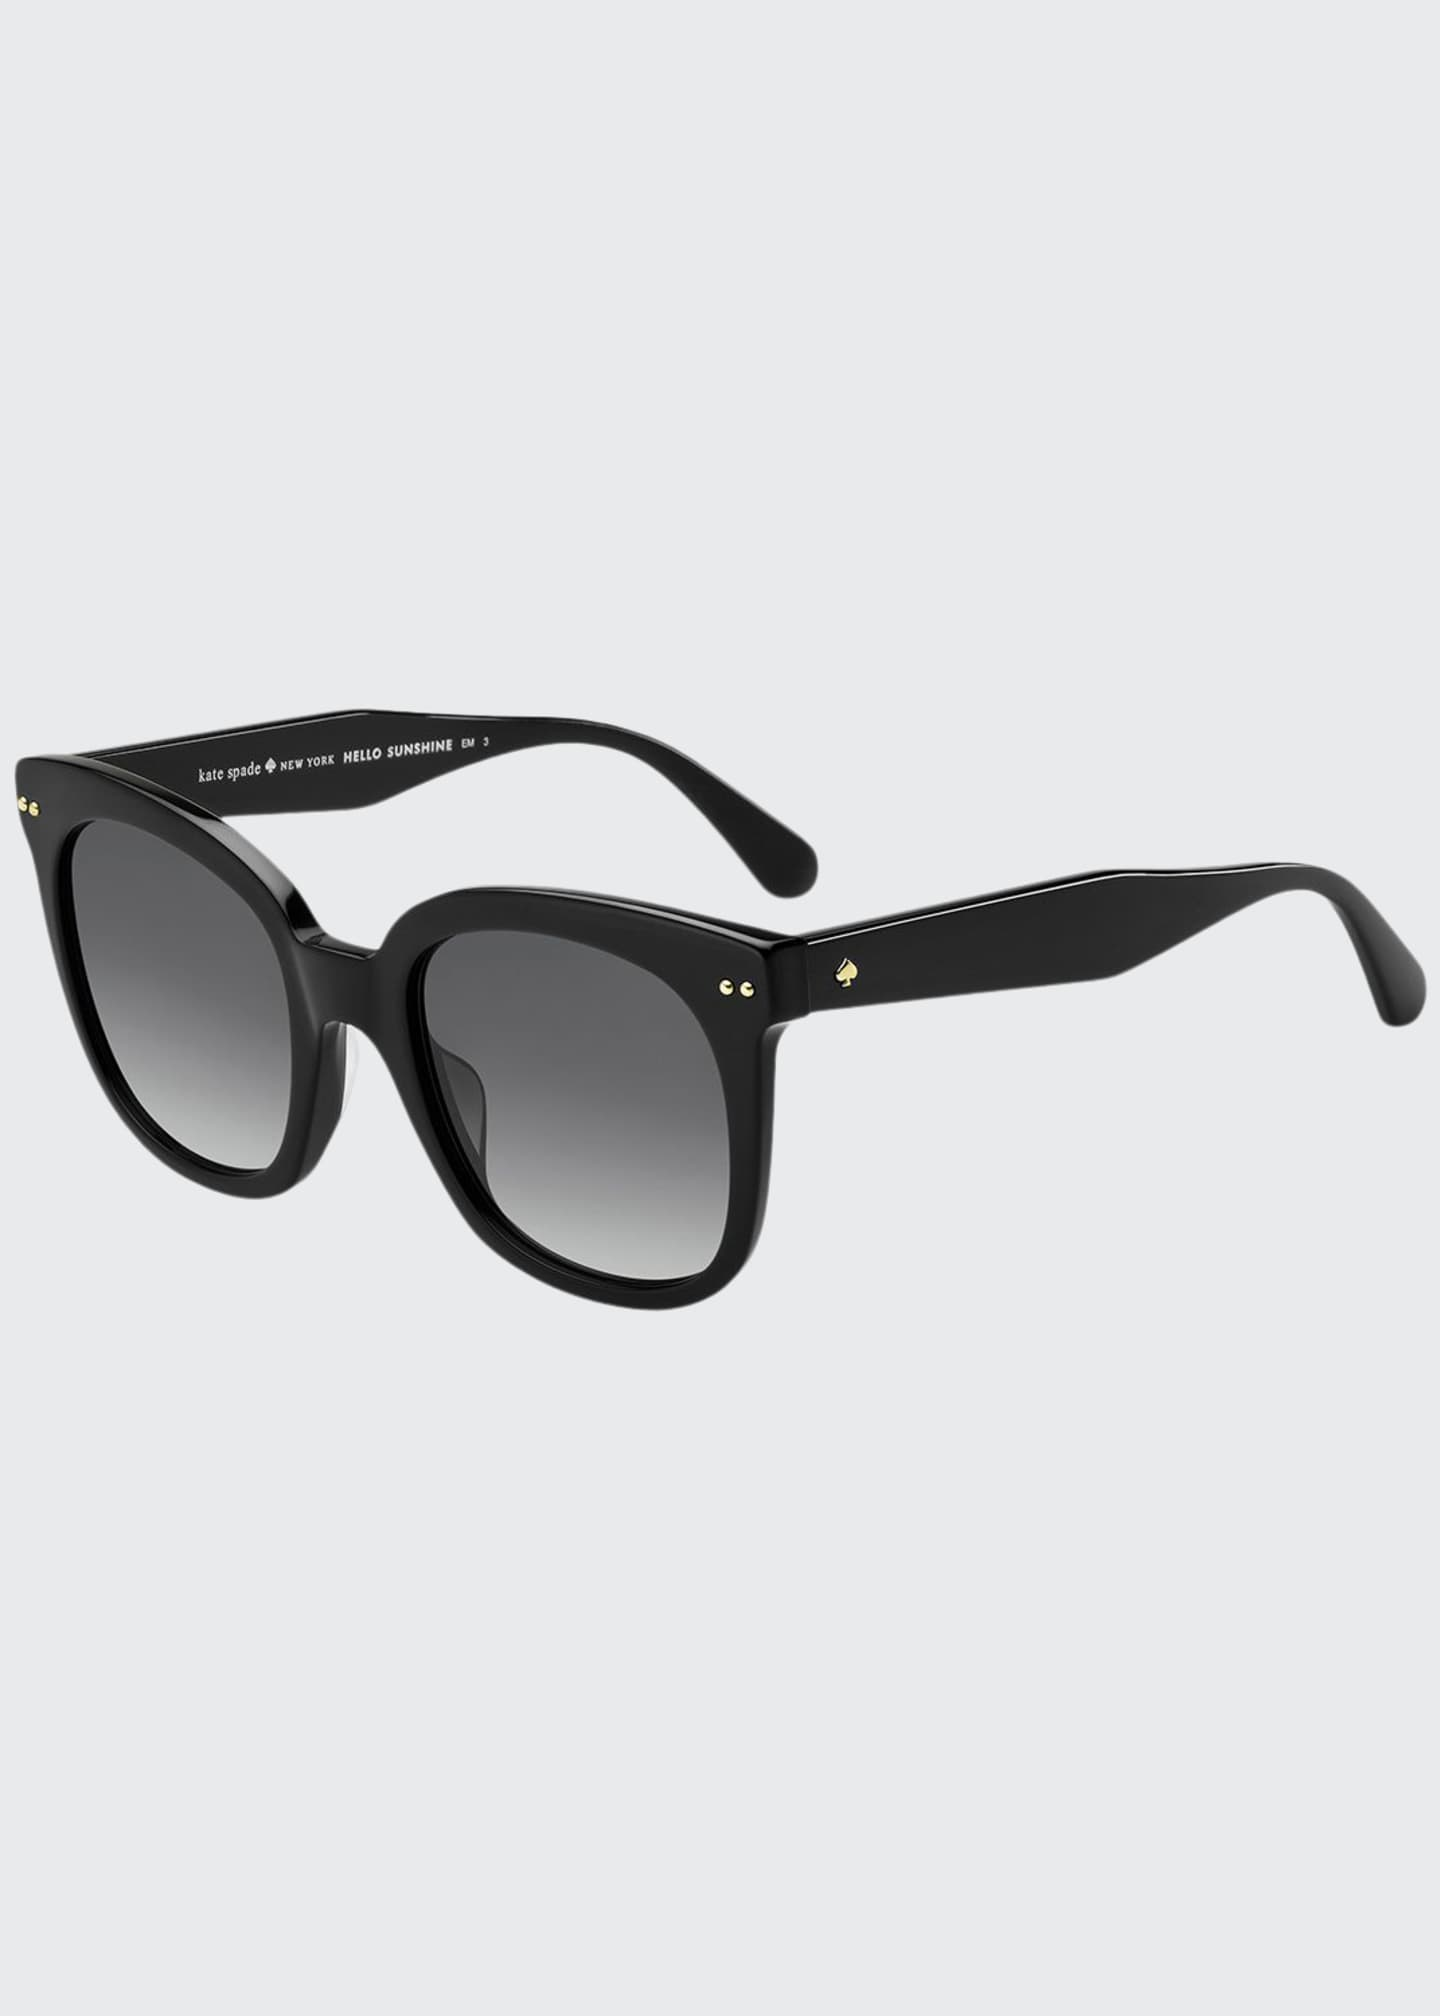 Image 1 of 1: atalias round acetate sunglasses